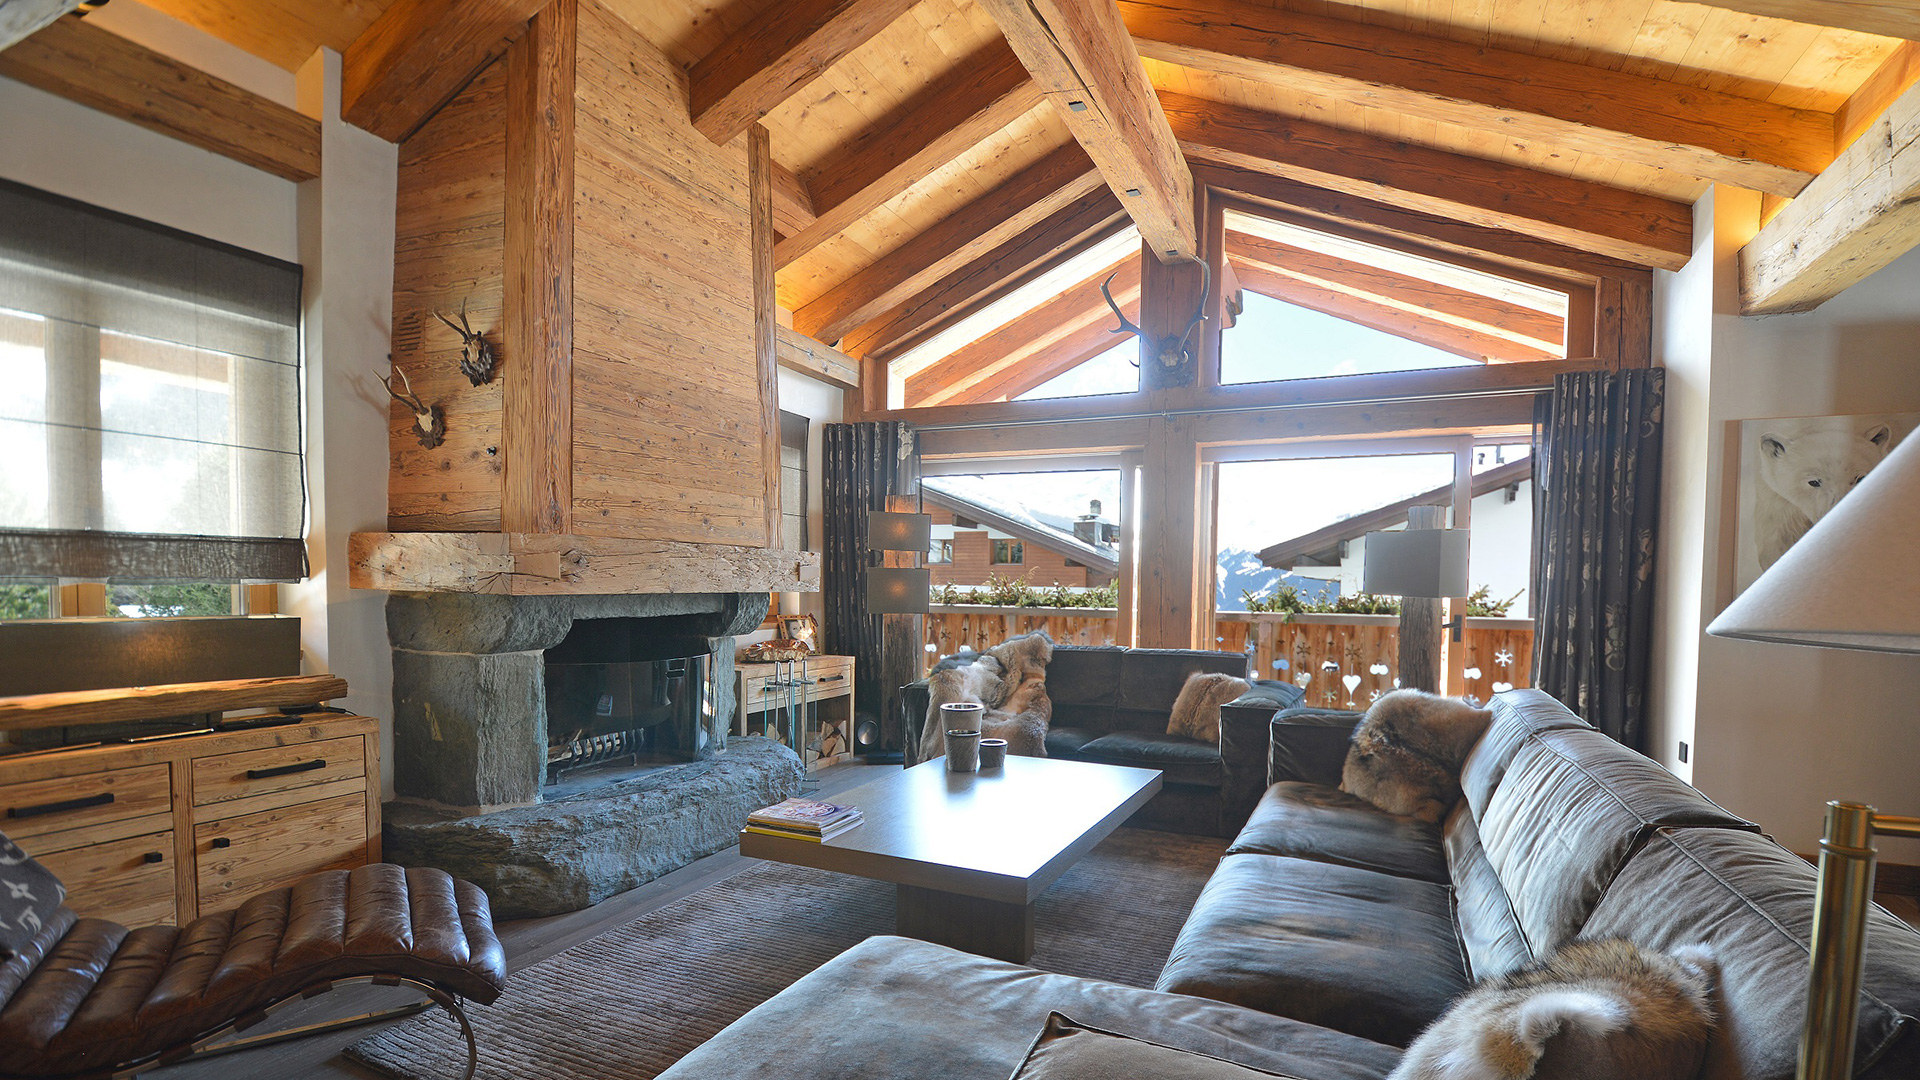 Chalet Shatoosh Chalet, Switzerland